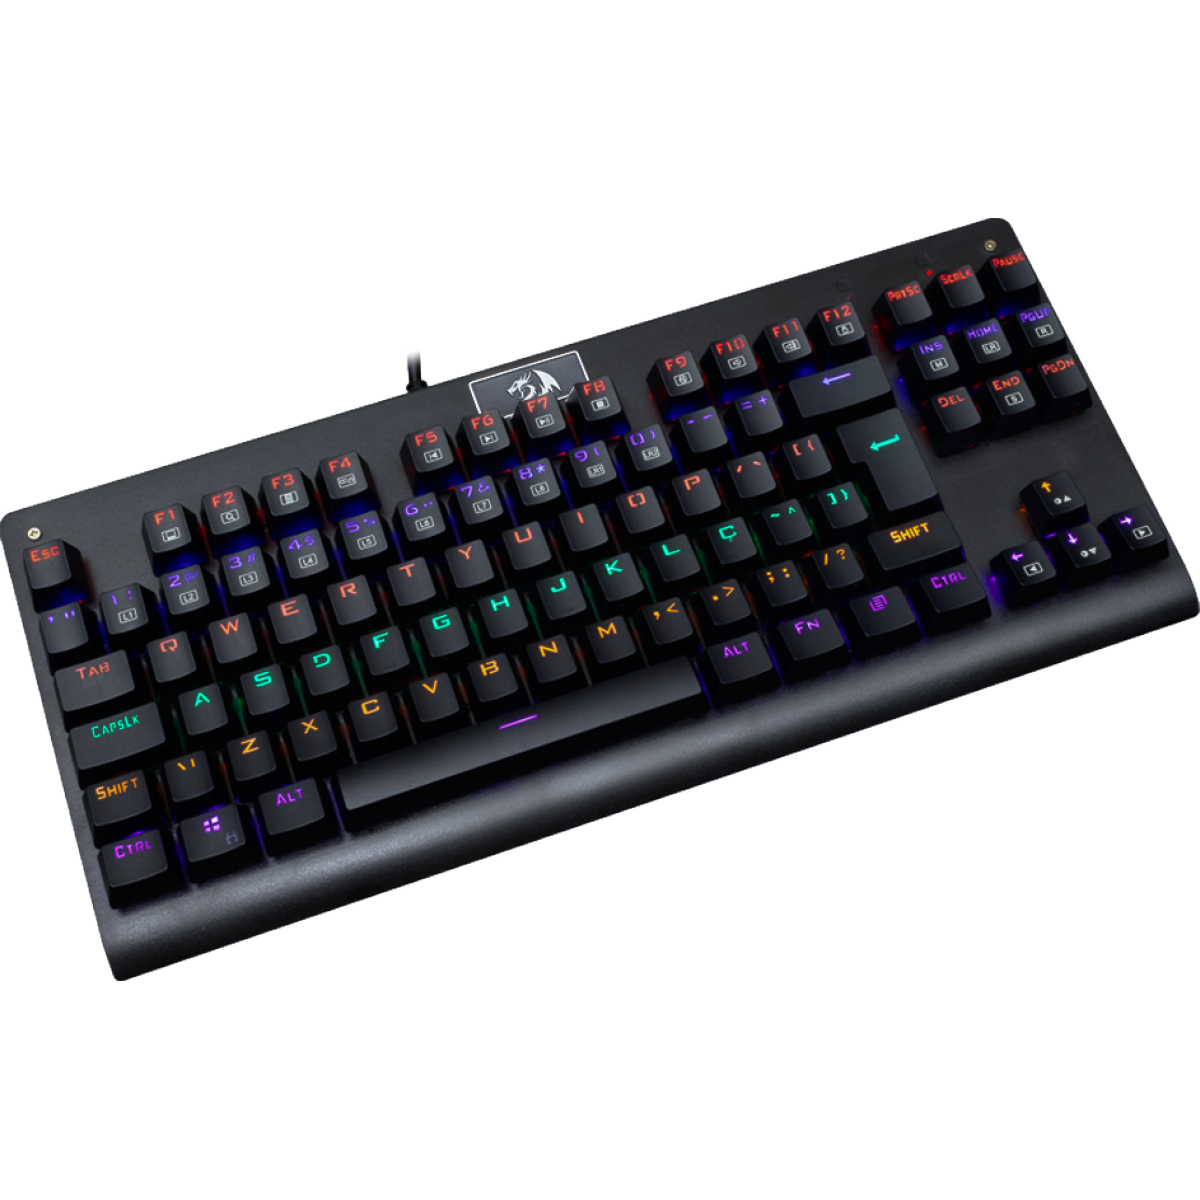 Teclado Mecânico Gamer Redragon Dark Avenger K568 Rainbow, Switch Red, ABNT2, Black